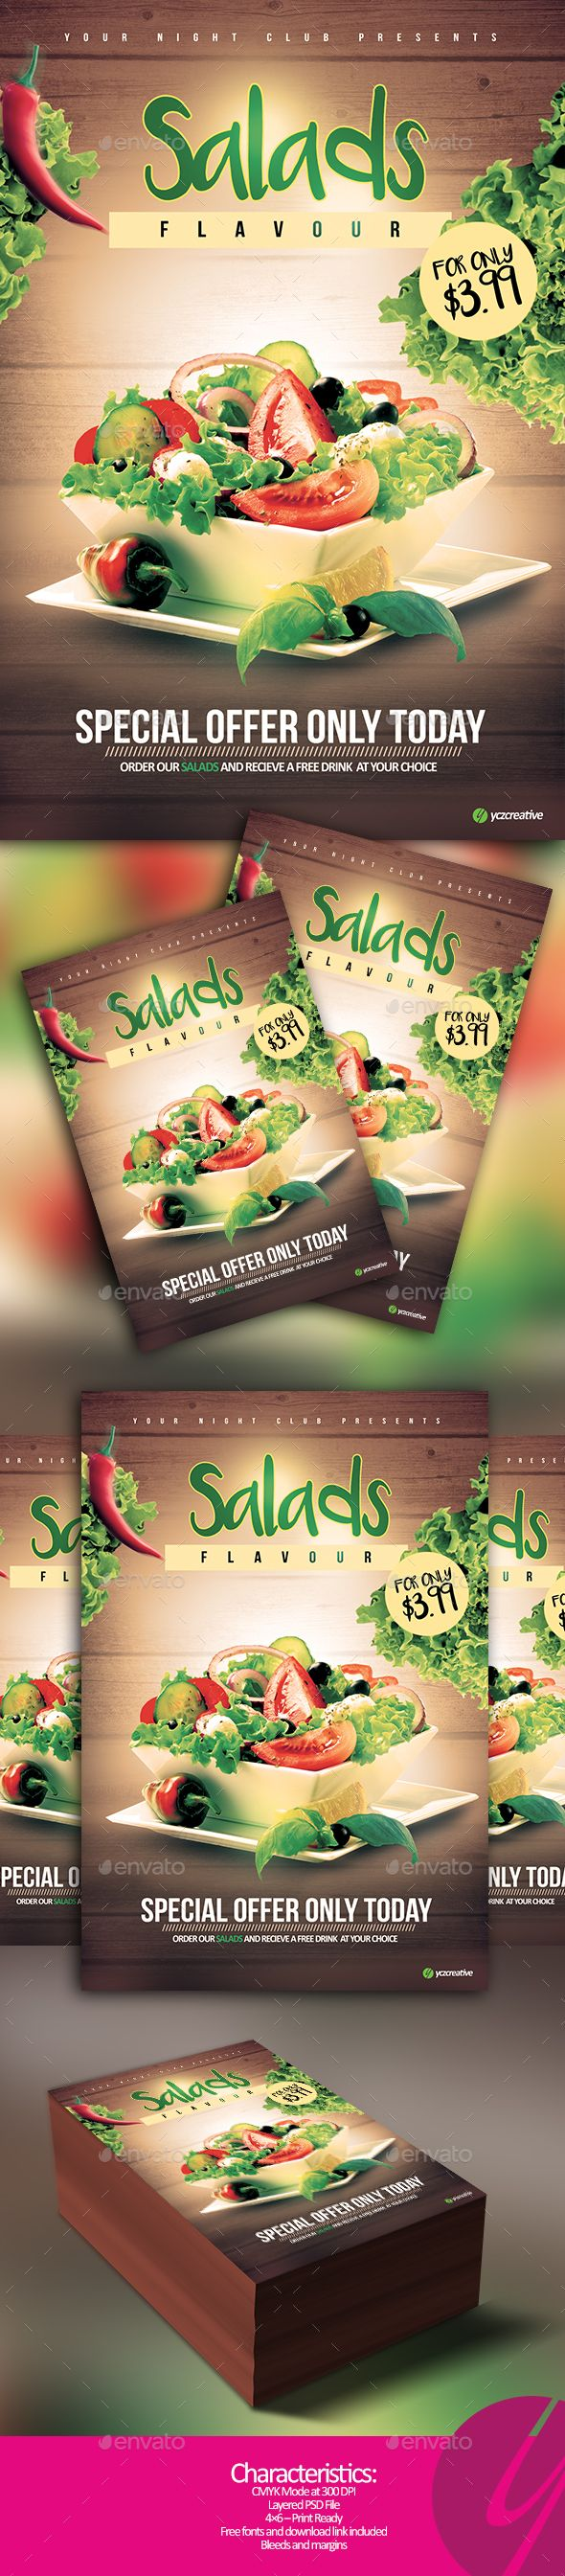 best images about food menu flyers pork donuts salads flavour flyer